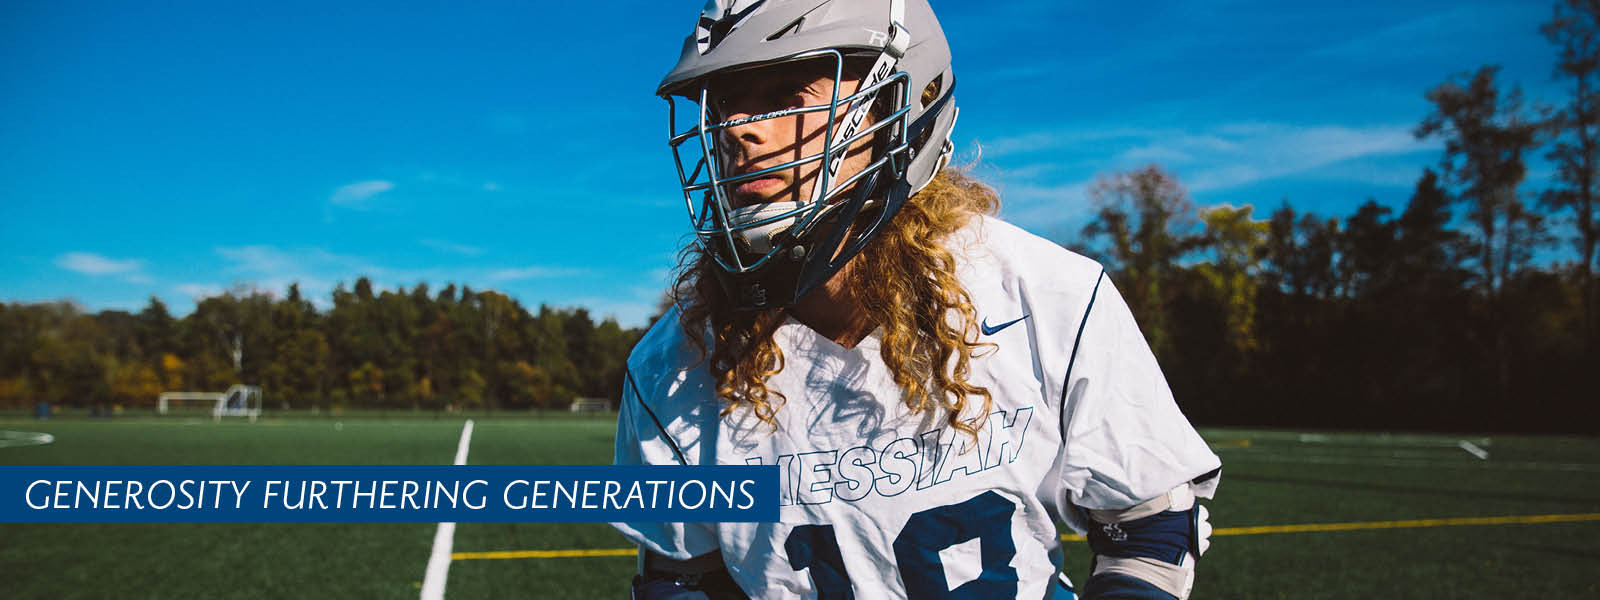 Men's Lacrosse Team header